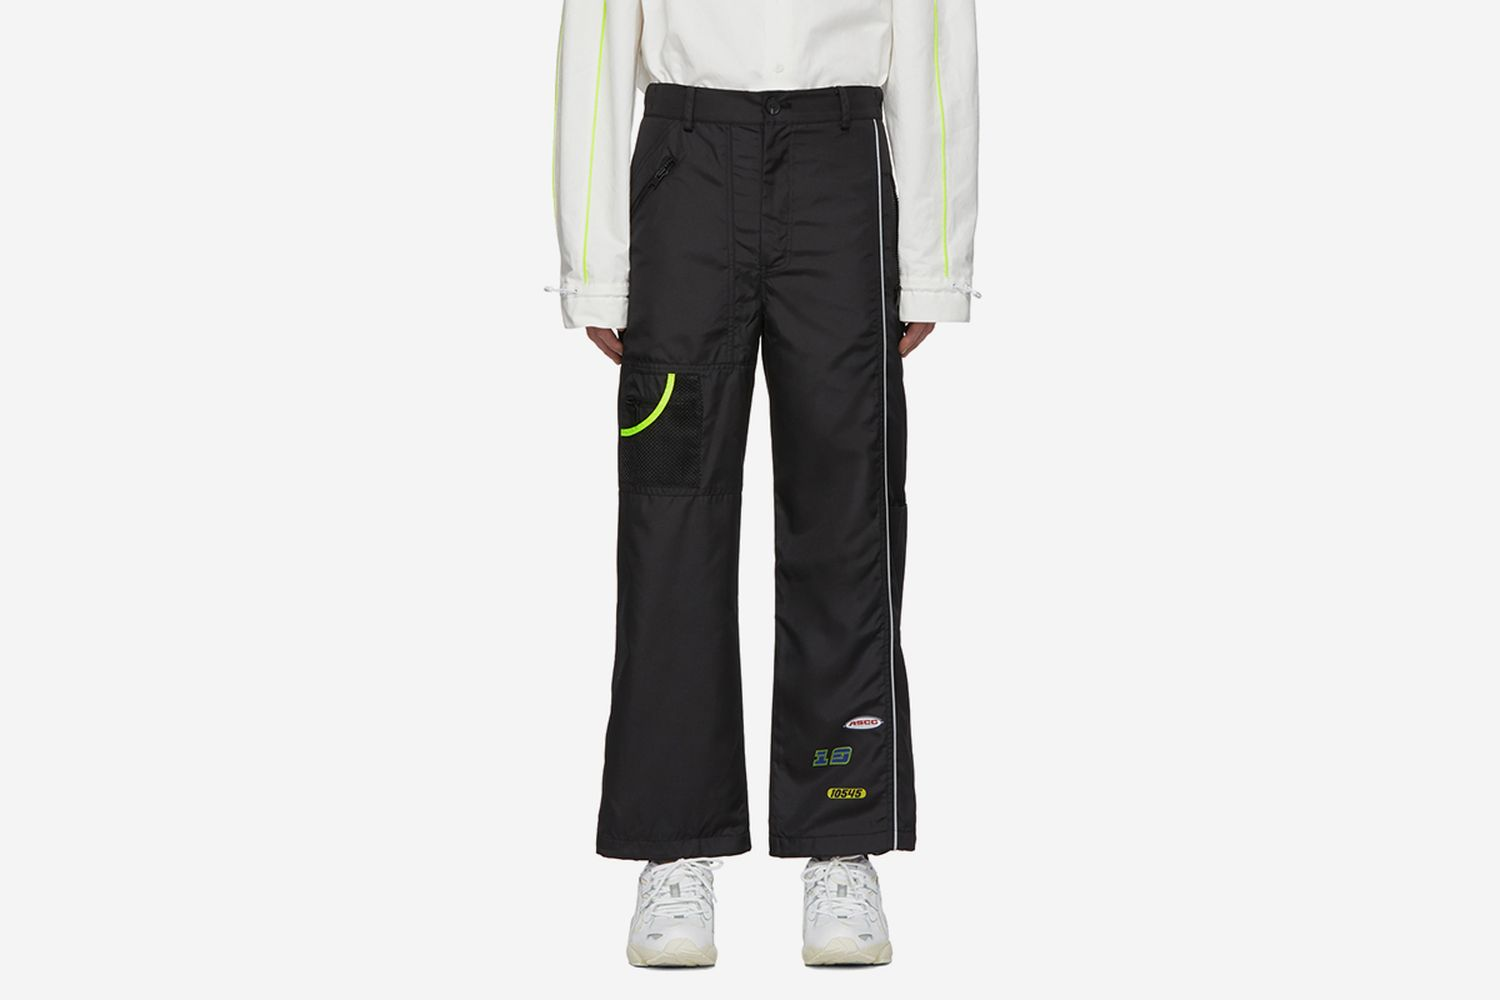 ASCC Panelled Trousers